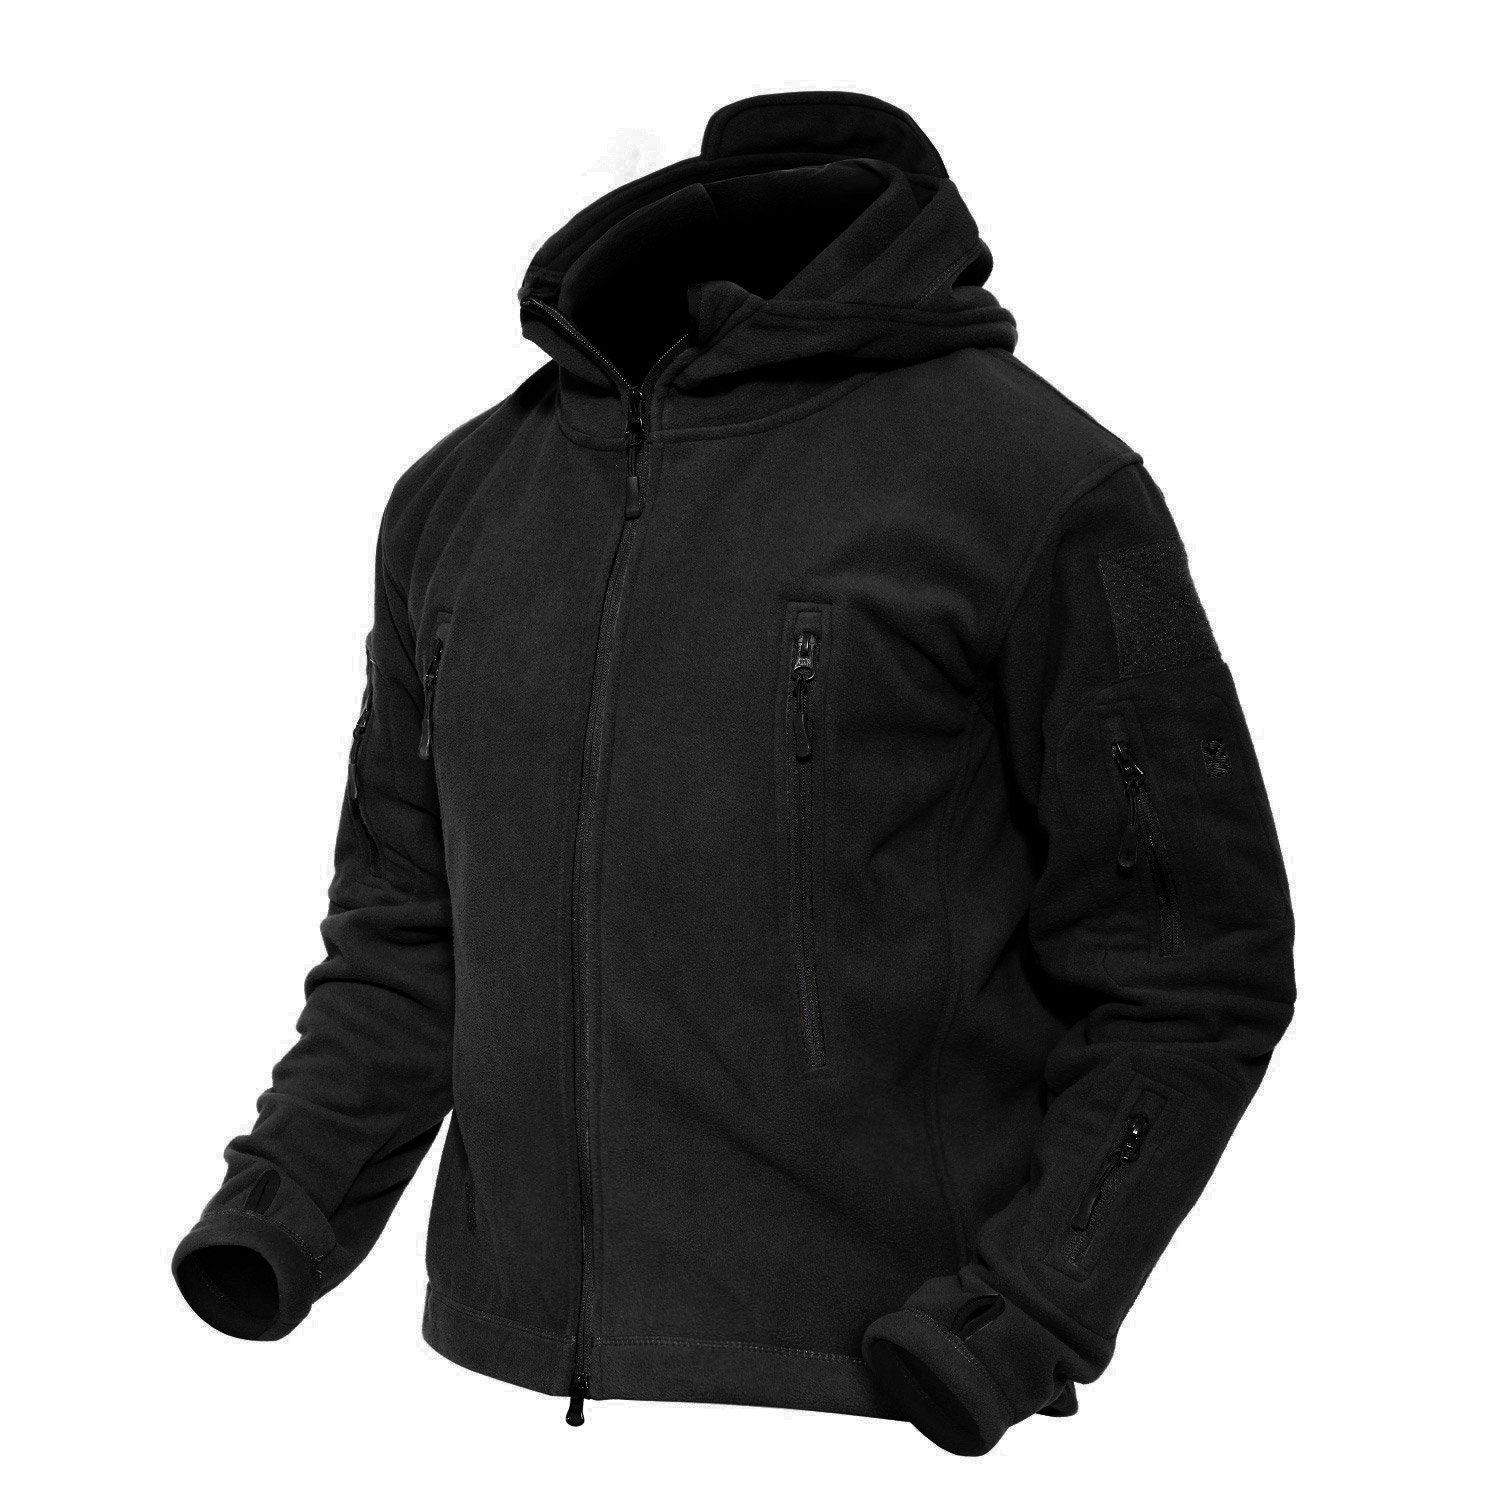 Mens Winter Jackets Windproof Jacket Warm Jacket Military Tactical Fleece Jacket for Men Black by MAGCOMSEN